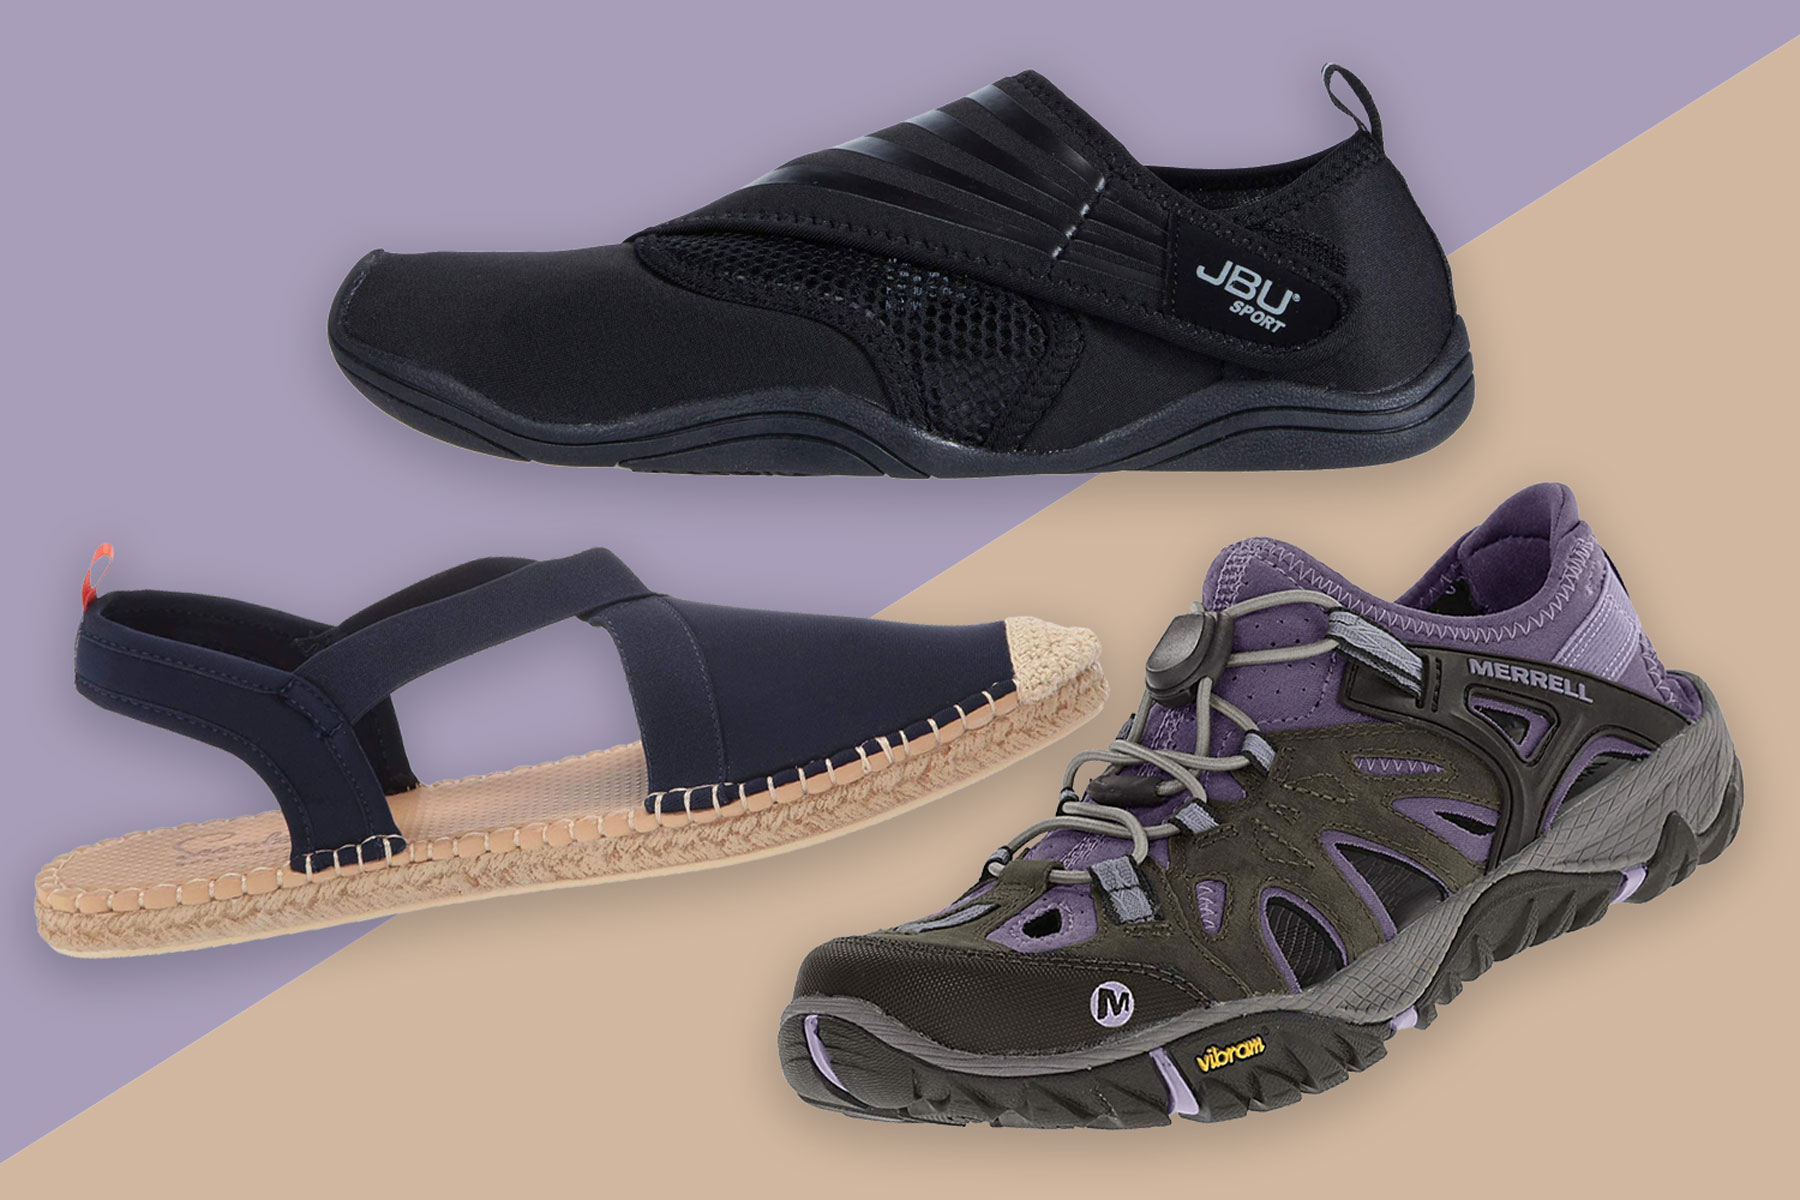 Three women's water shoes